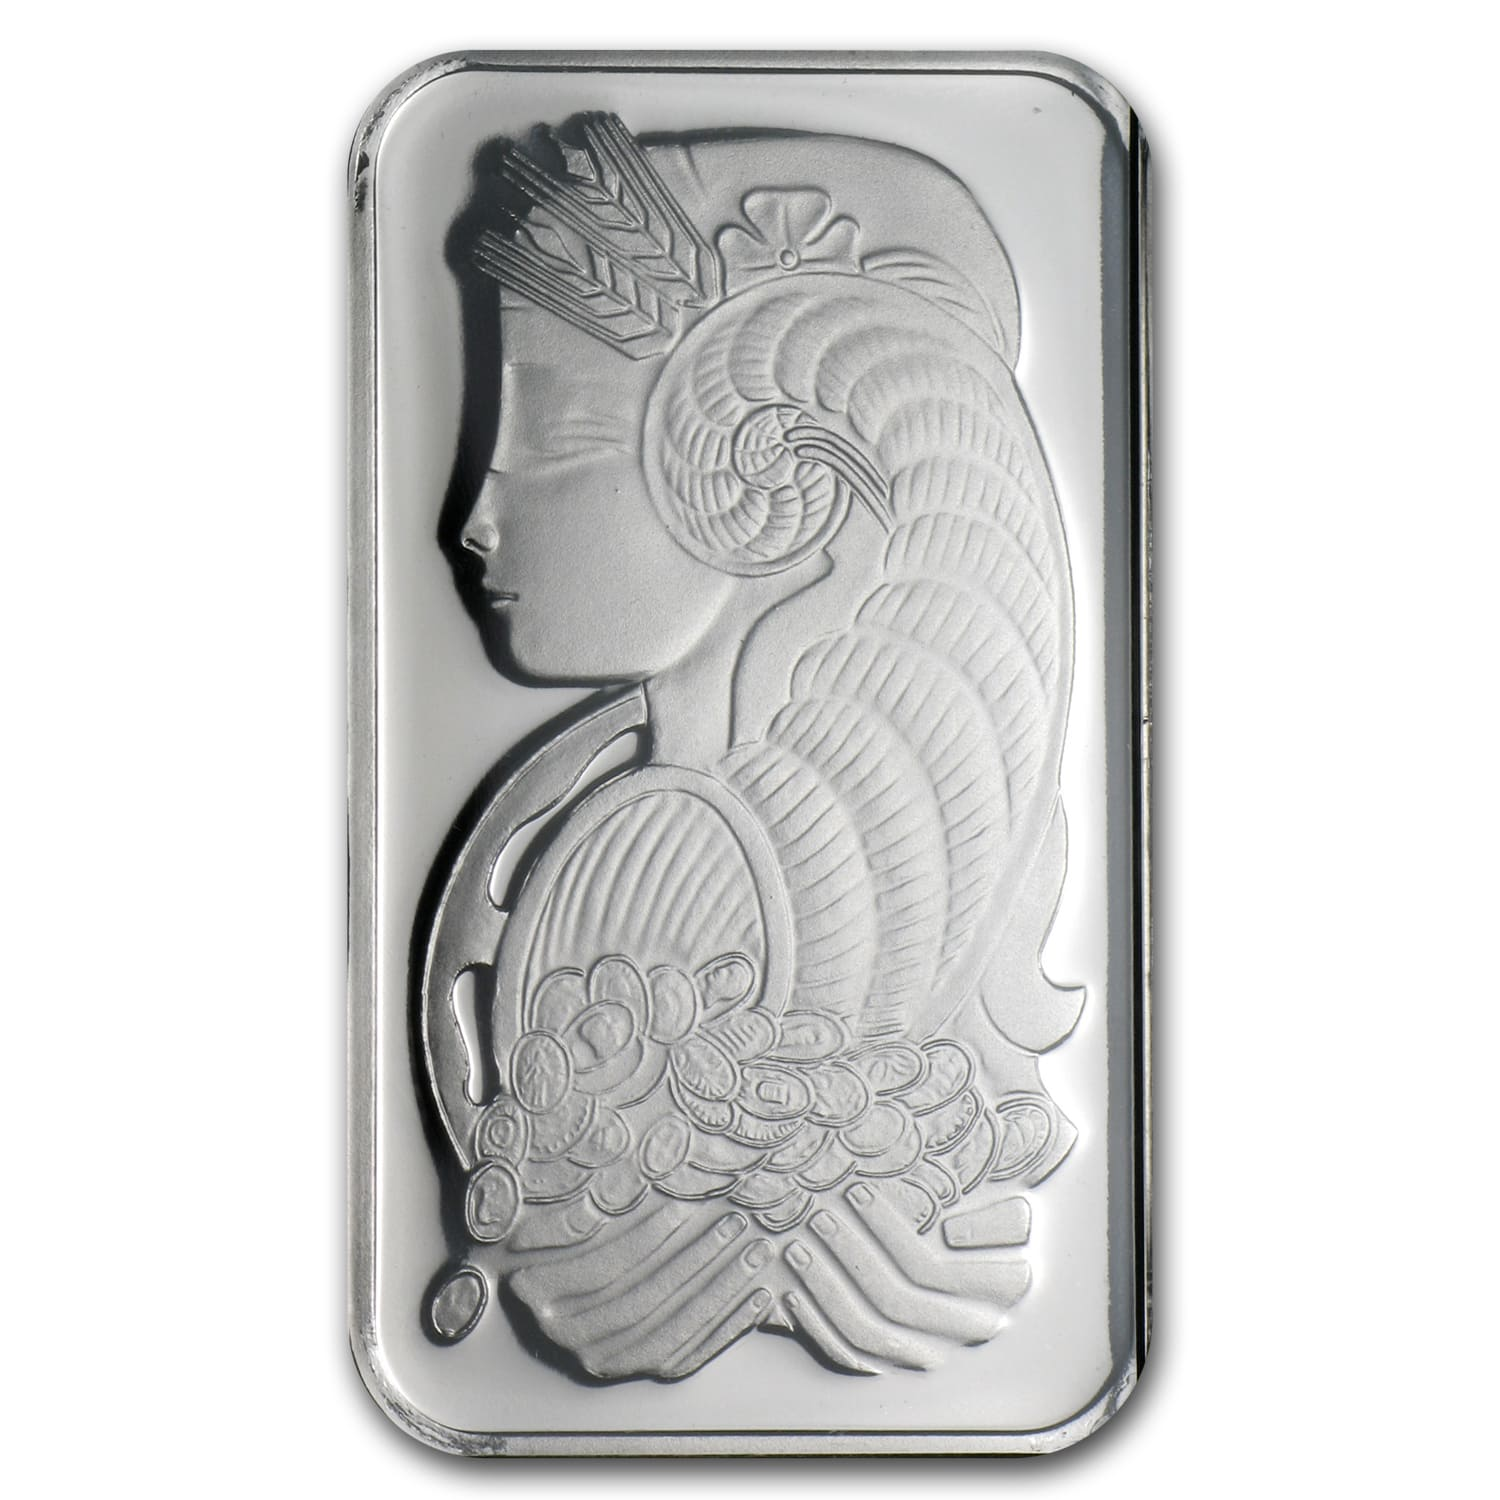 1 oz Platinum Bar - Pamp Suisse (Pre-Sale 8/10/15)